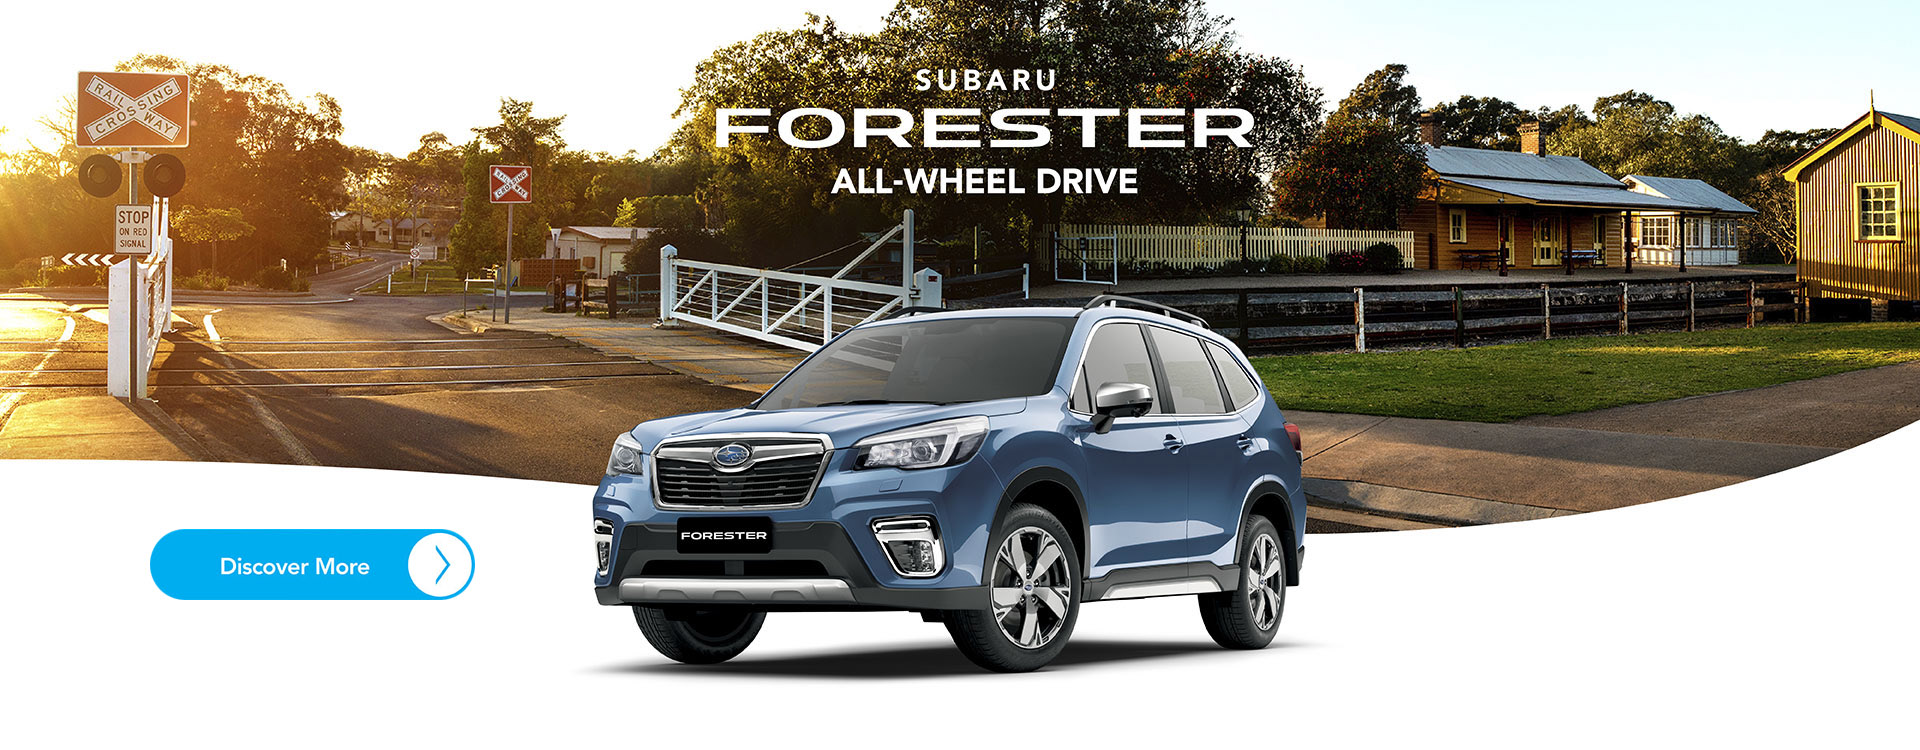 New Subaru Forester, including Hybrid e-Boxer, now available at DC Motors Subaru, Rockhampton. Test Drive Today!